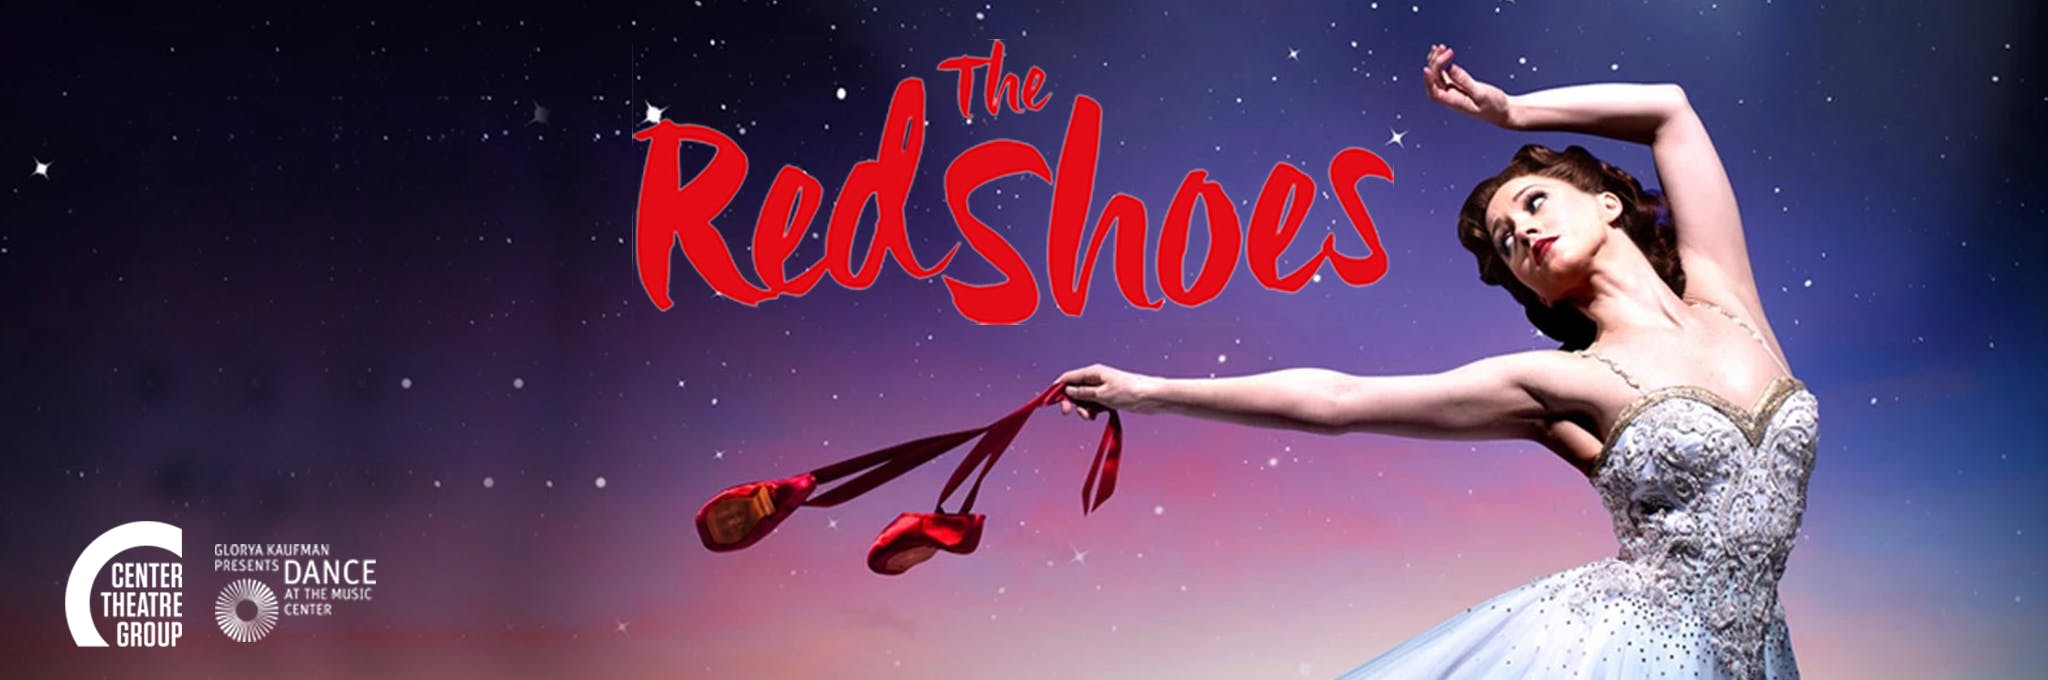 The Red Shoes Logo